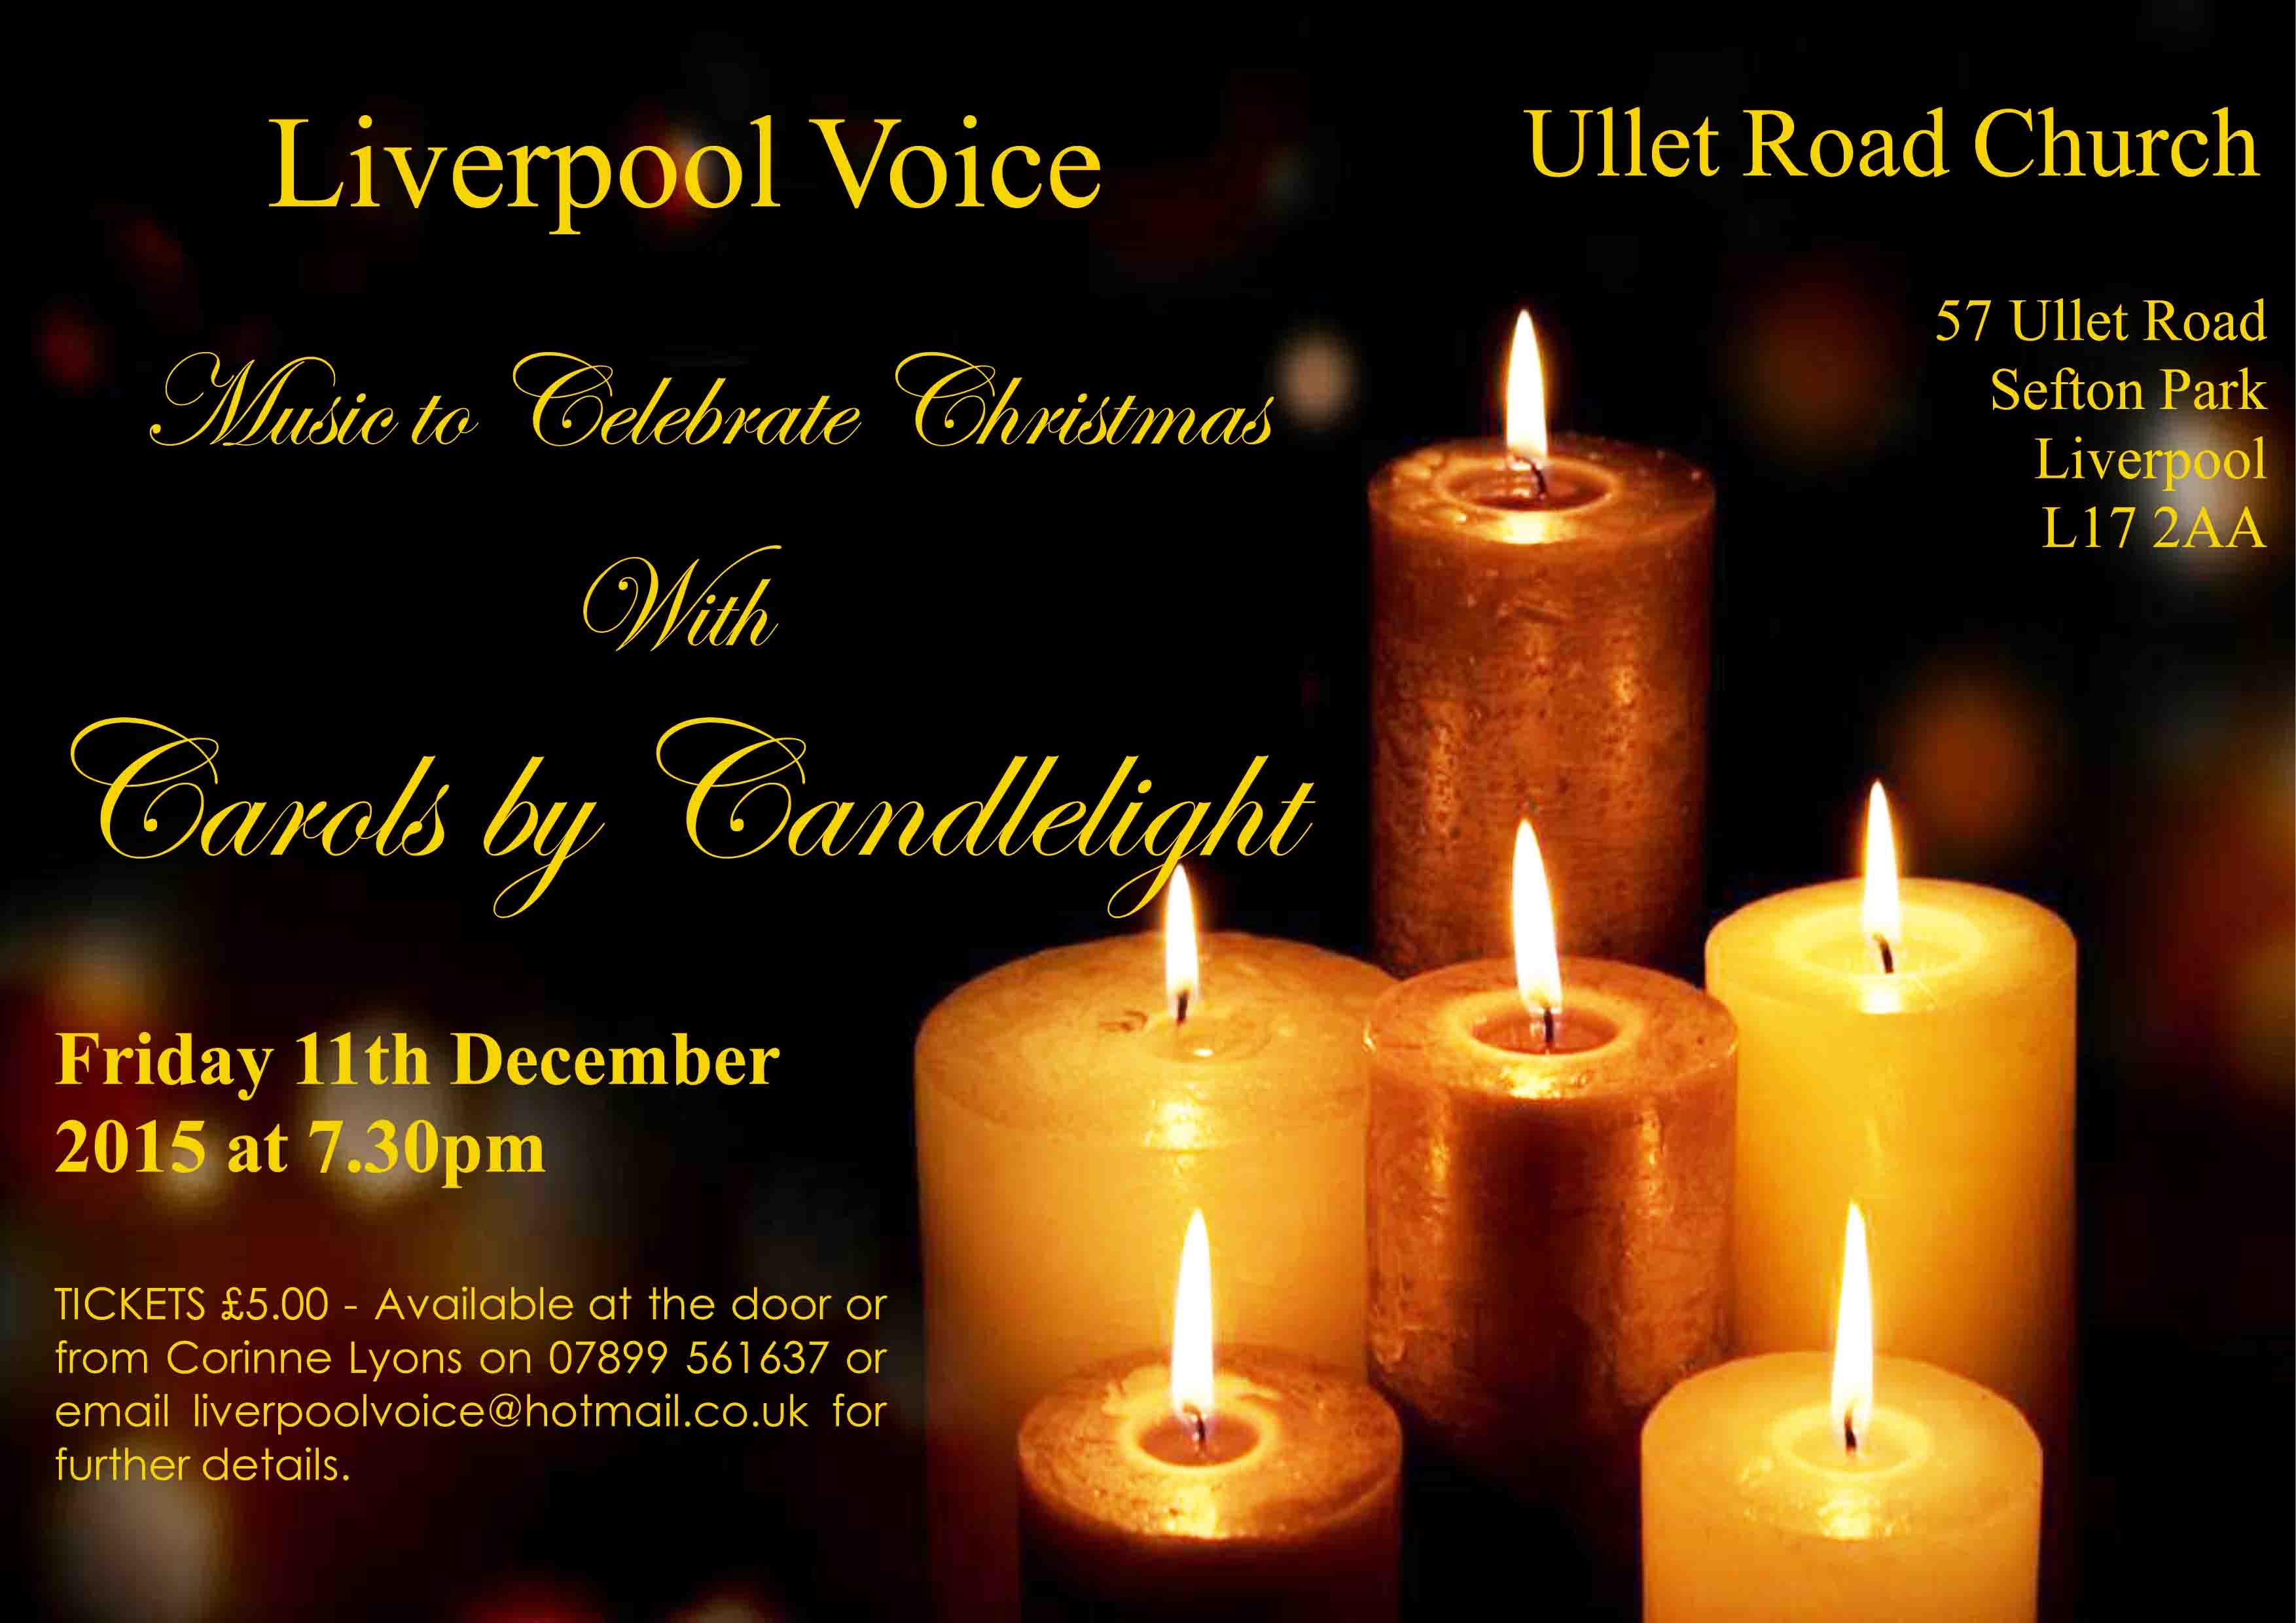 Carols by Candlelight poster by Chris Williams